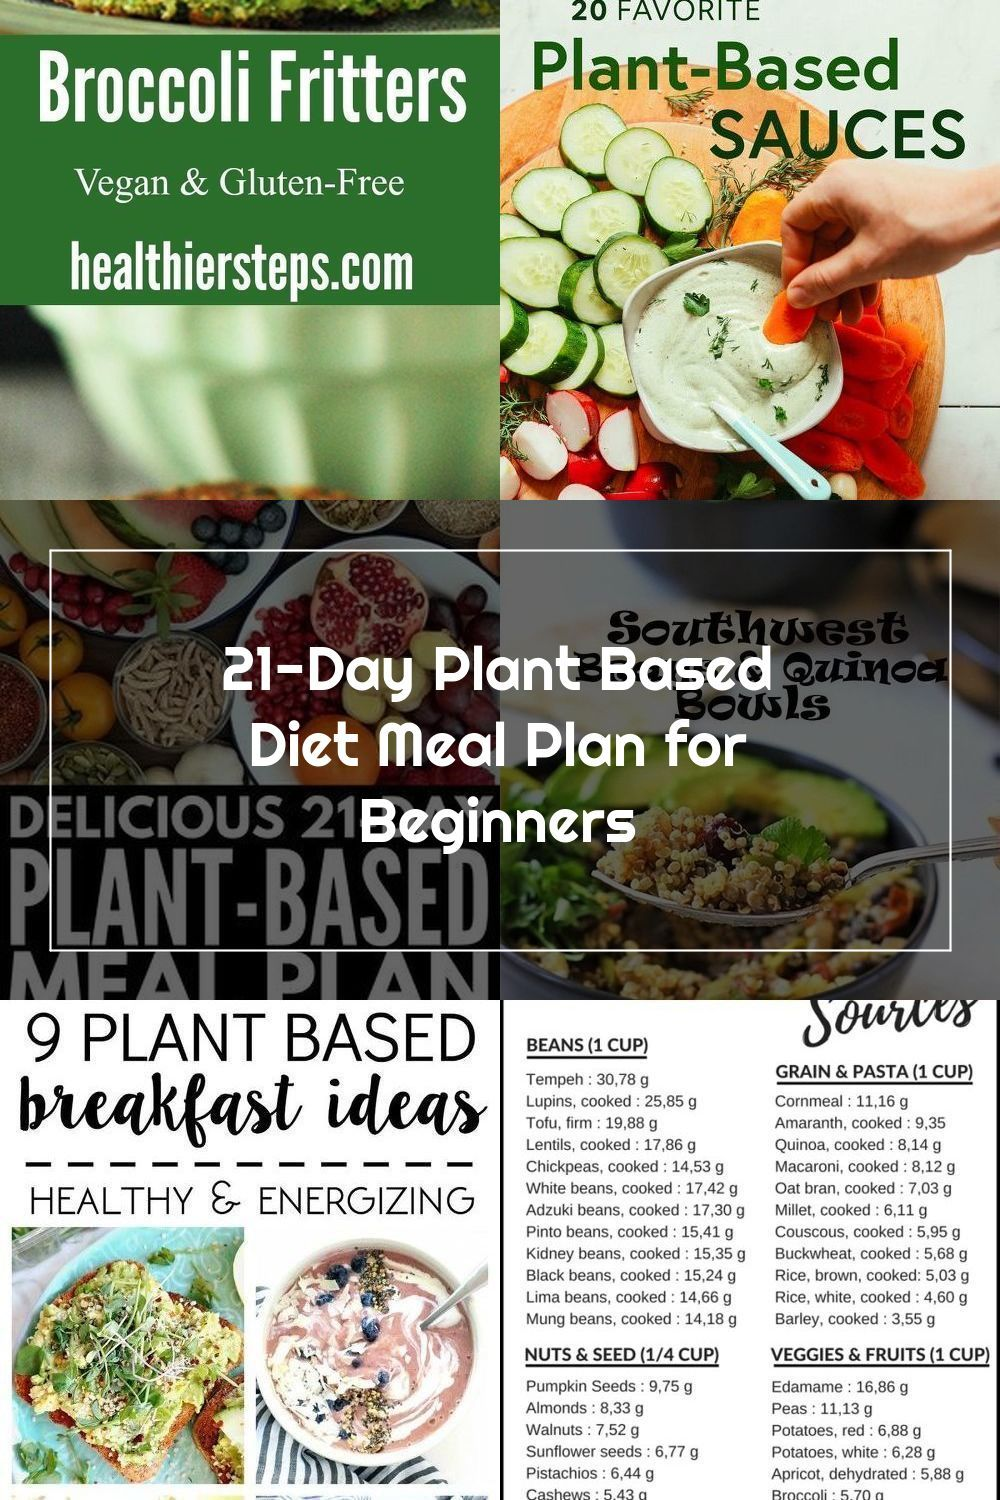 21 Day Plant Based Diet Meal Plan For Beginners Looking For Simple Whole I 2020